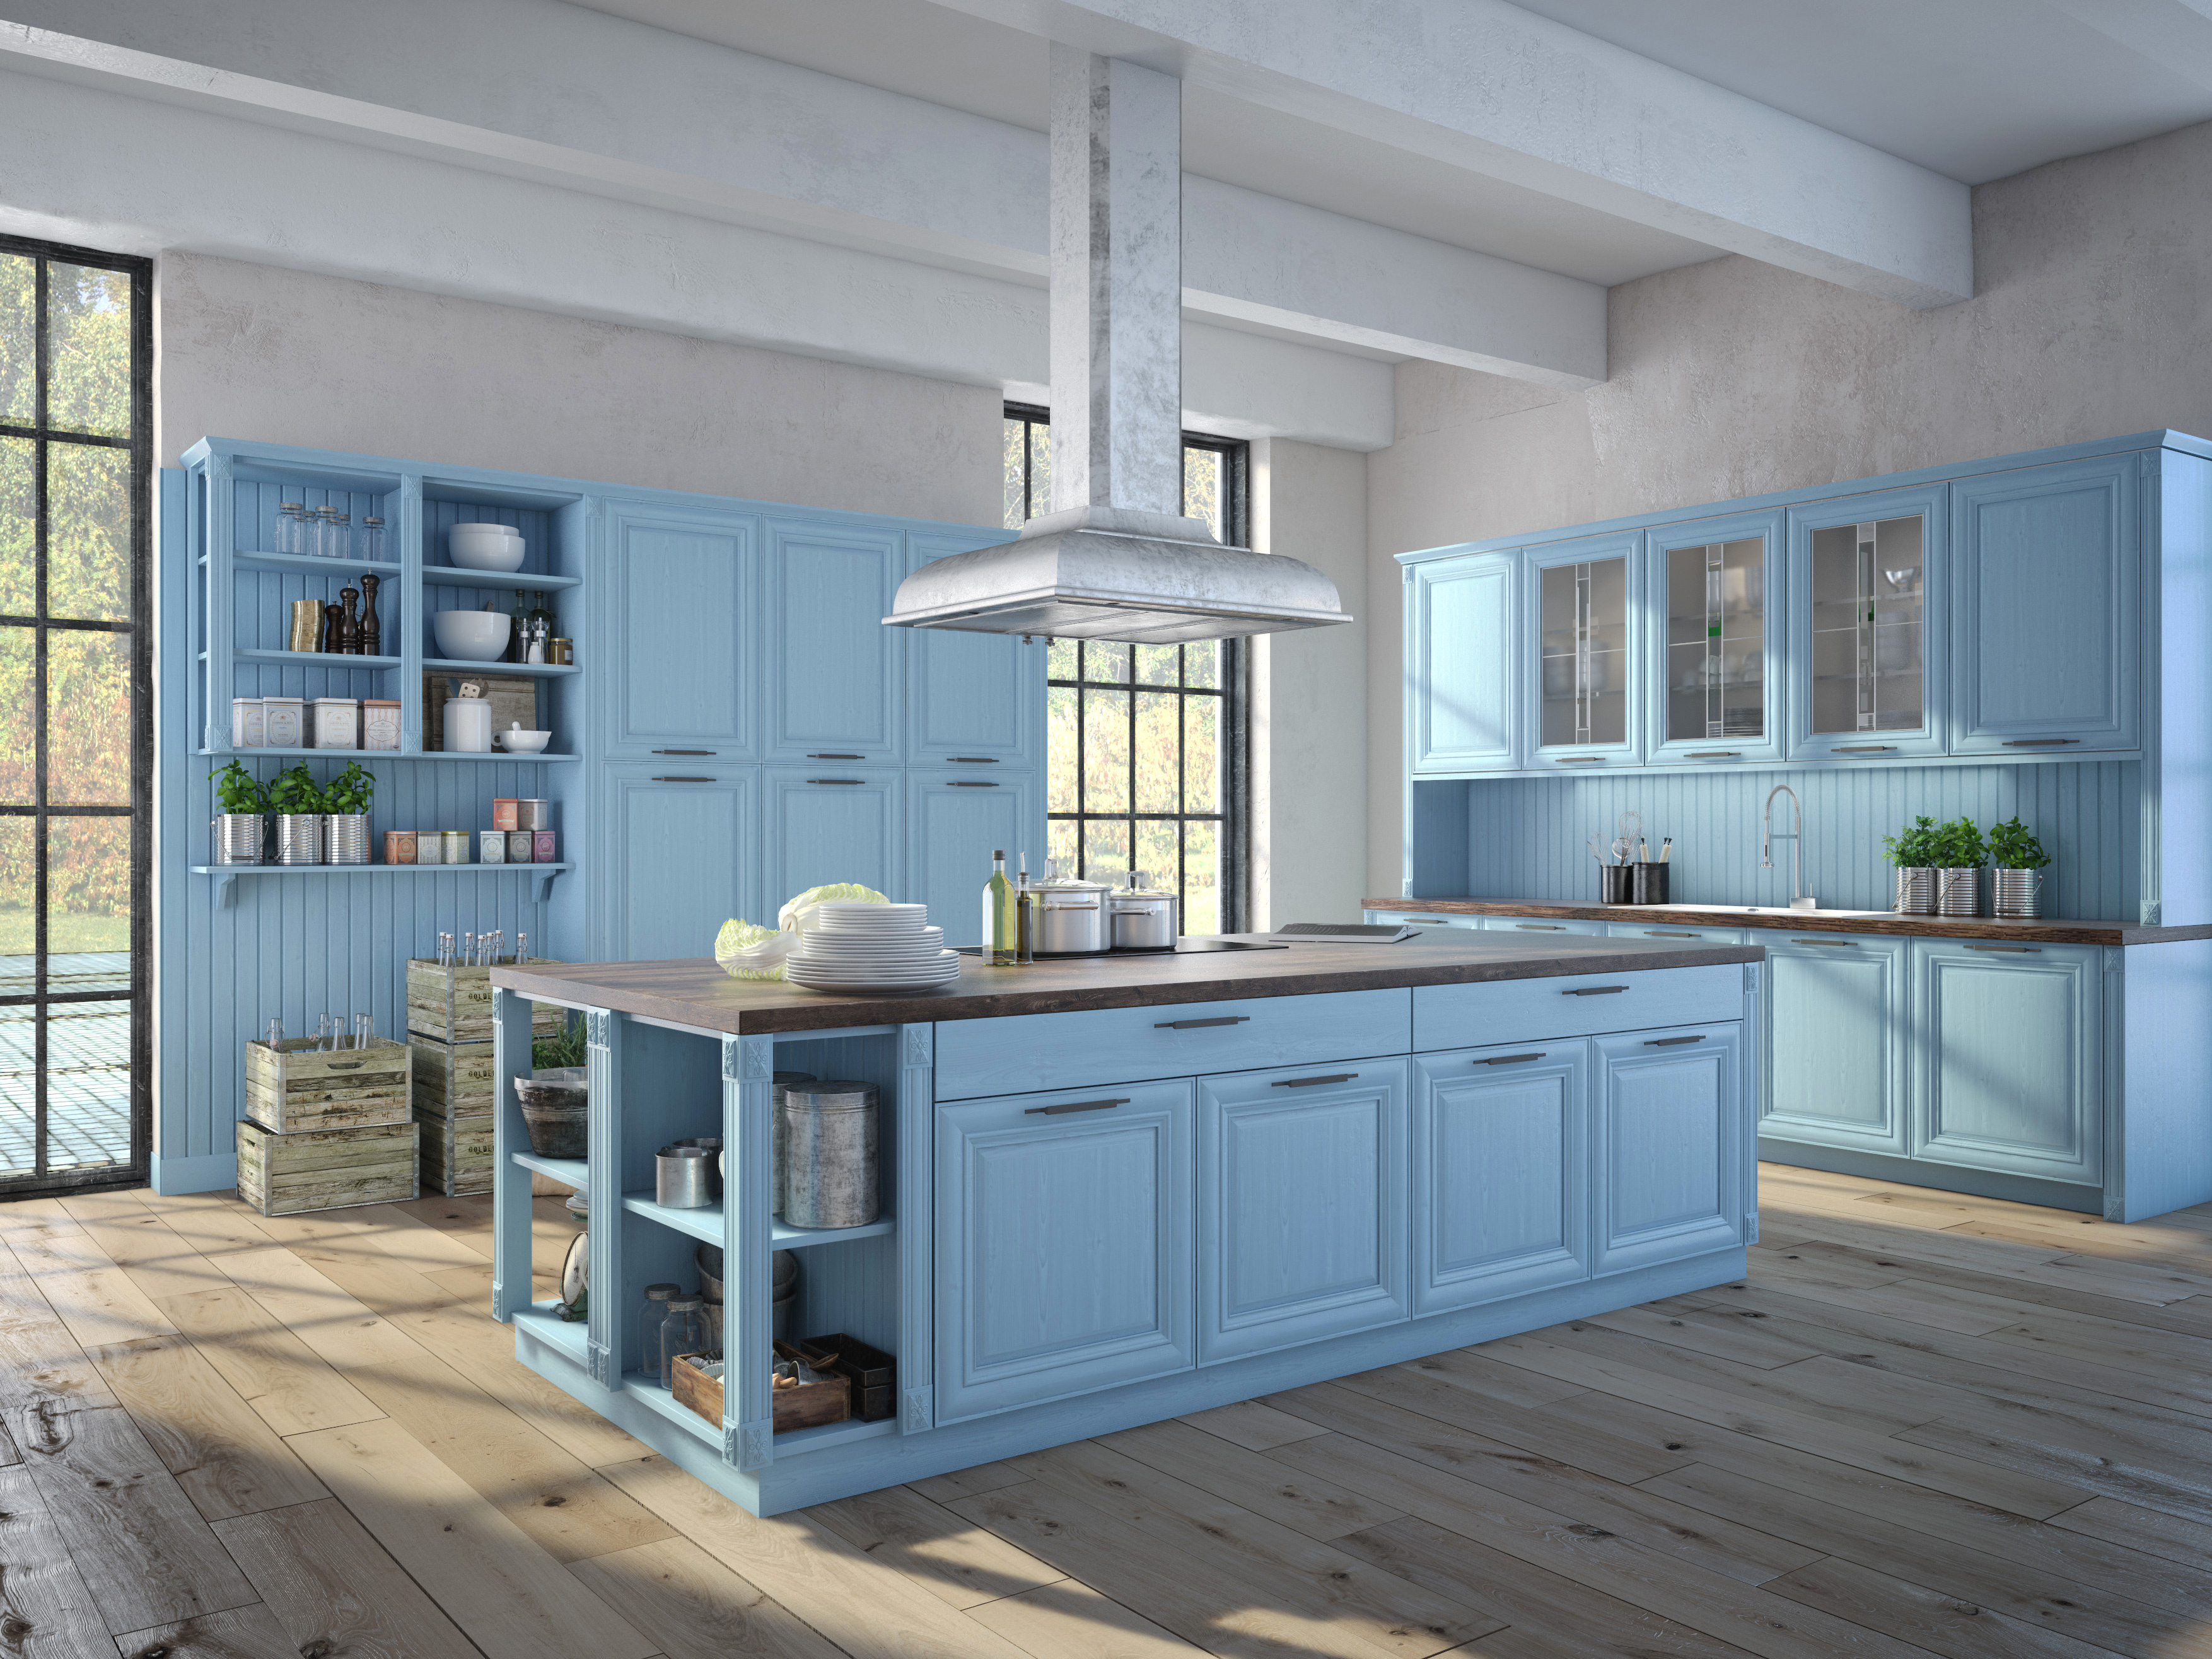 Cooking With Color When To Use Blue In The Kitchen Houzz - Blue kitchen paint colors pictures ideas amp tips from cooking with color when to use blue in the kitchen houzz